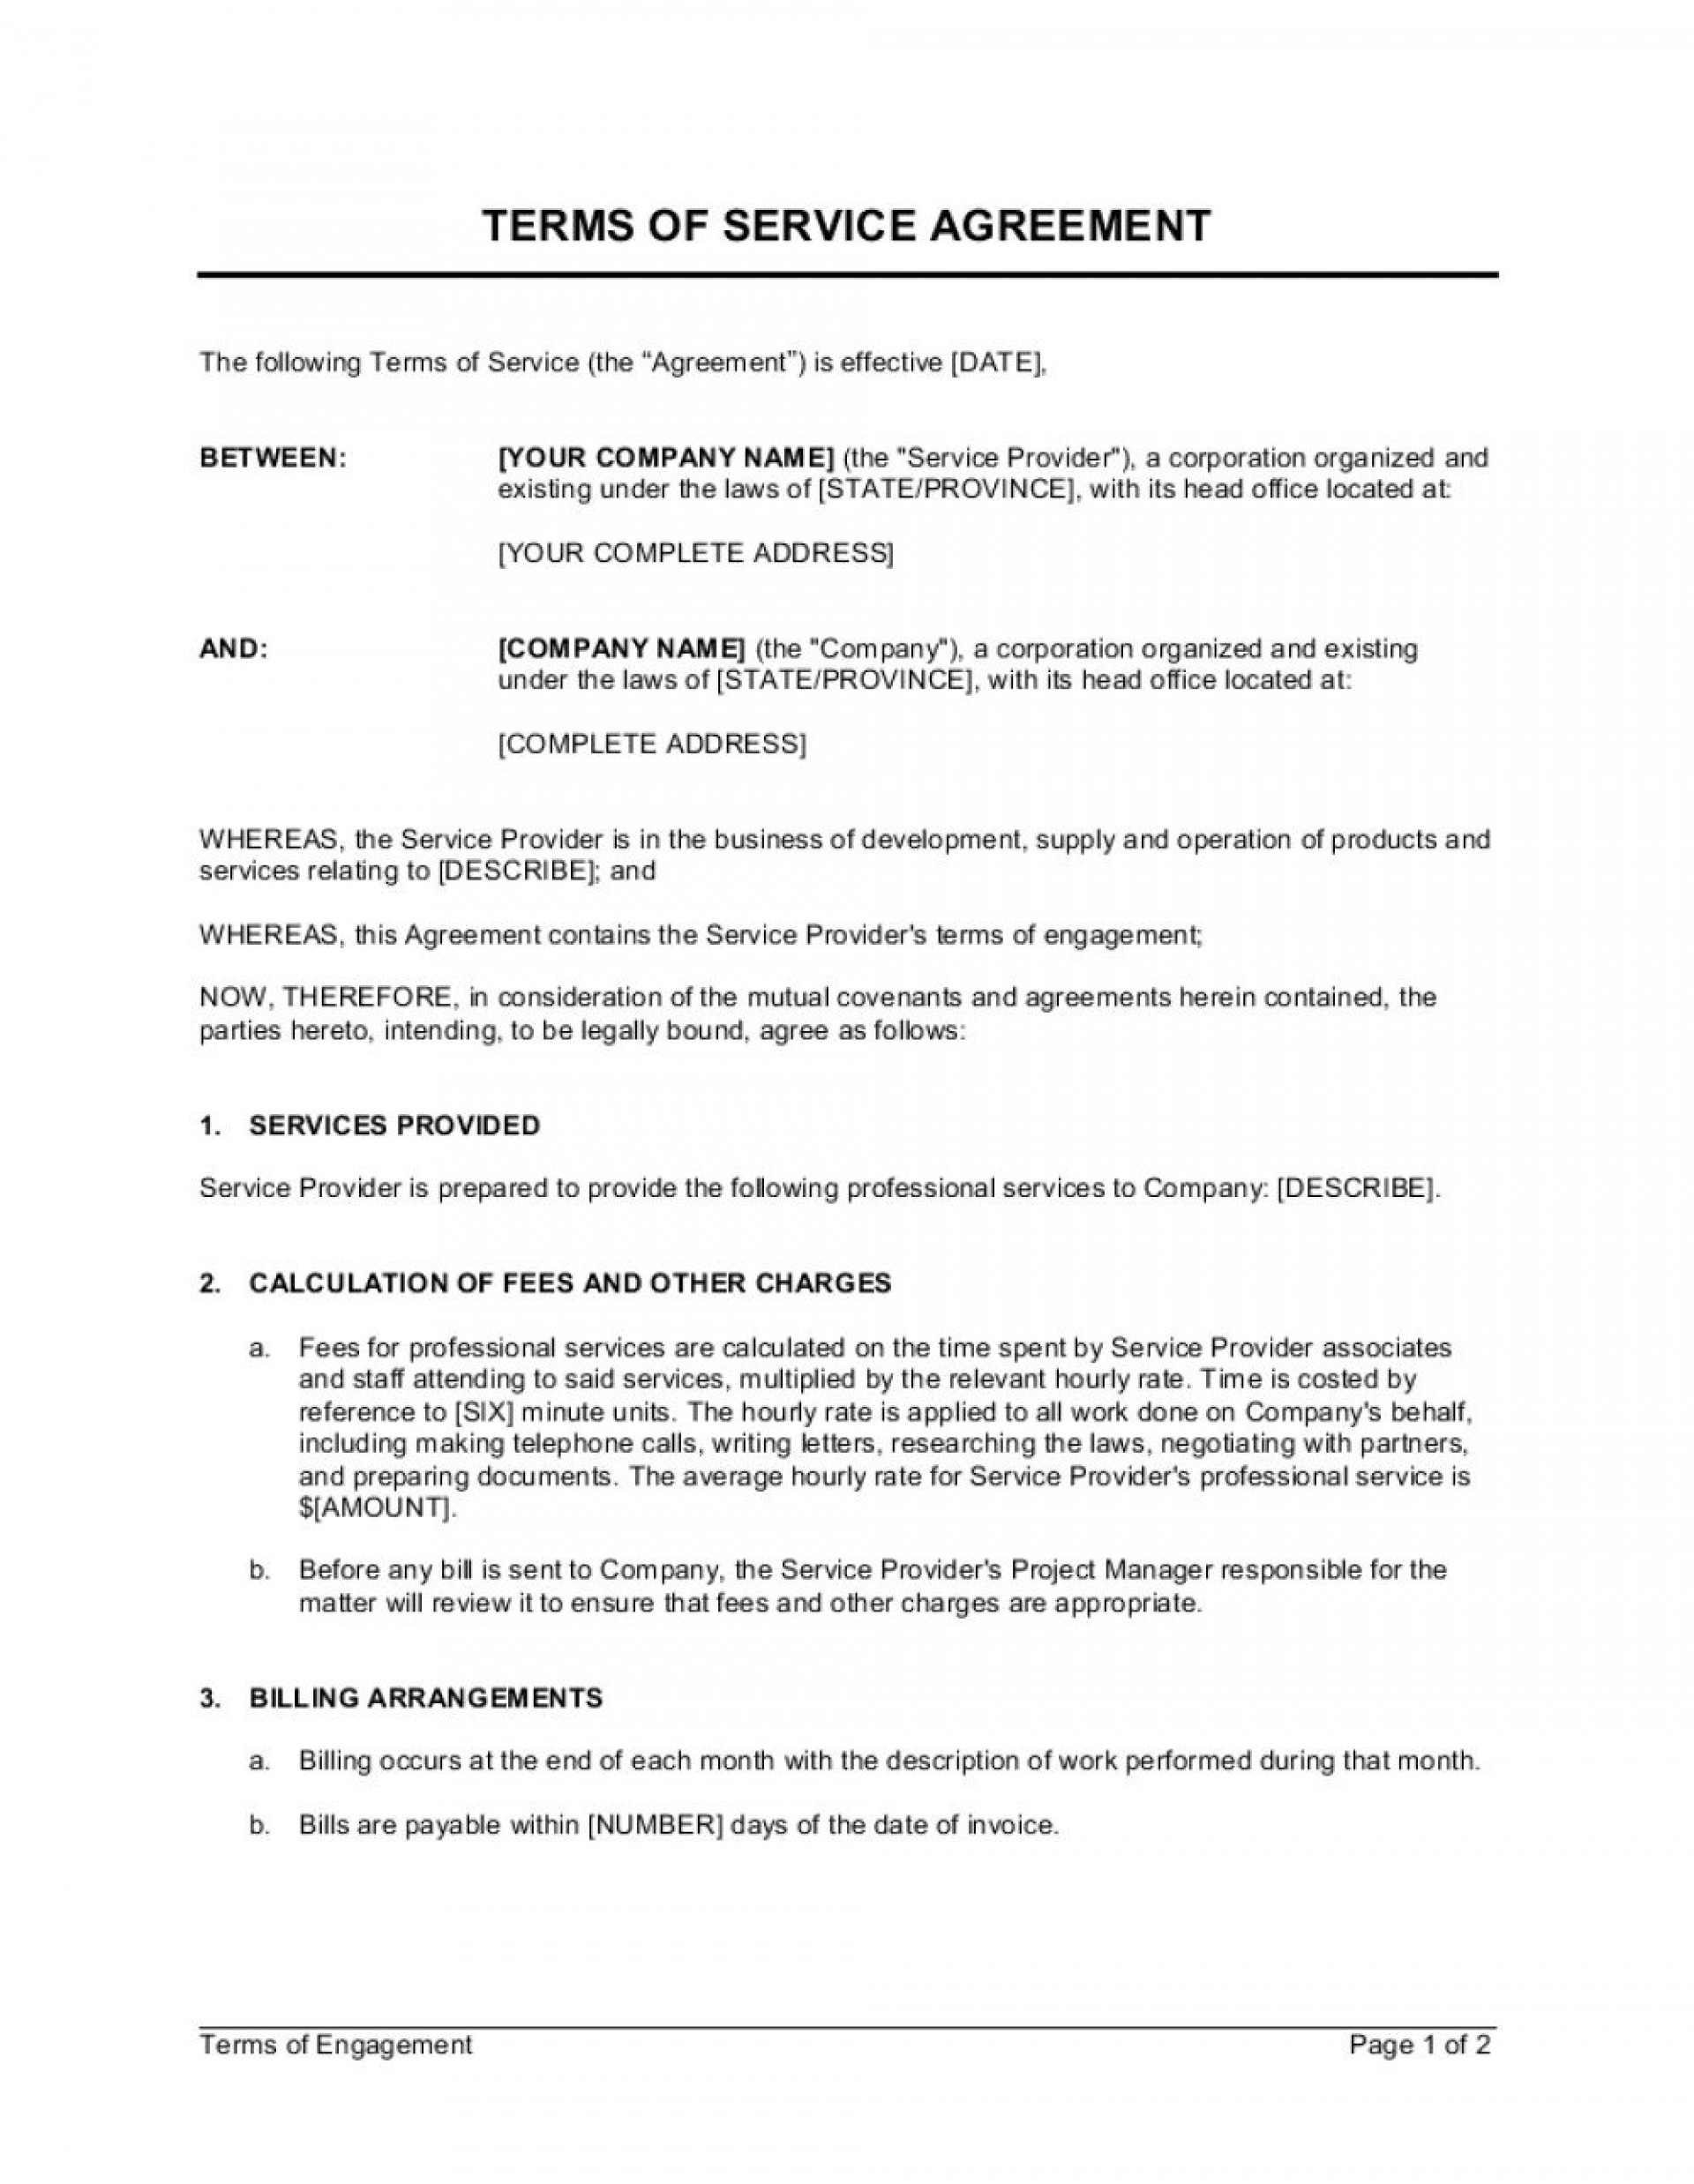 007 Unique Term Of Agreement Template Sample  Service Contract Busines Uk1920